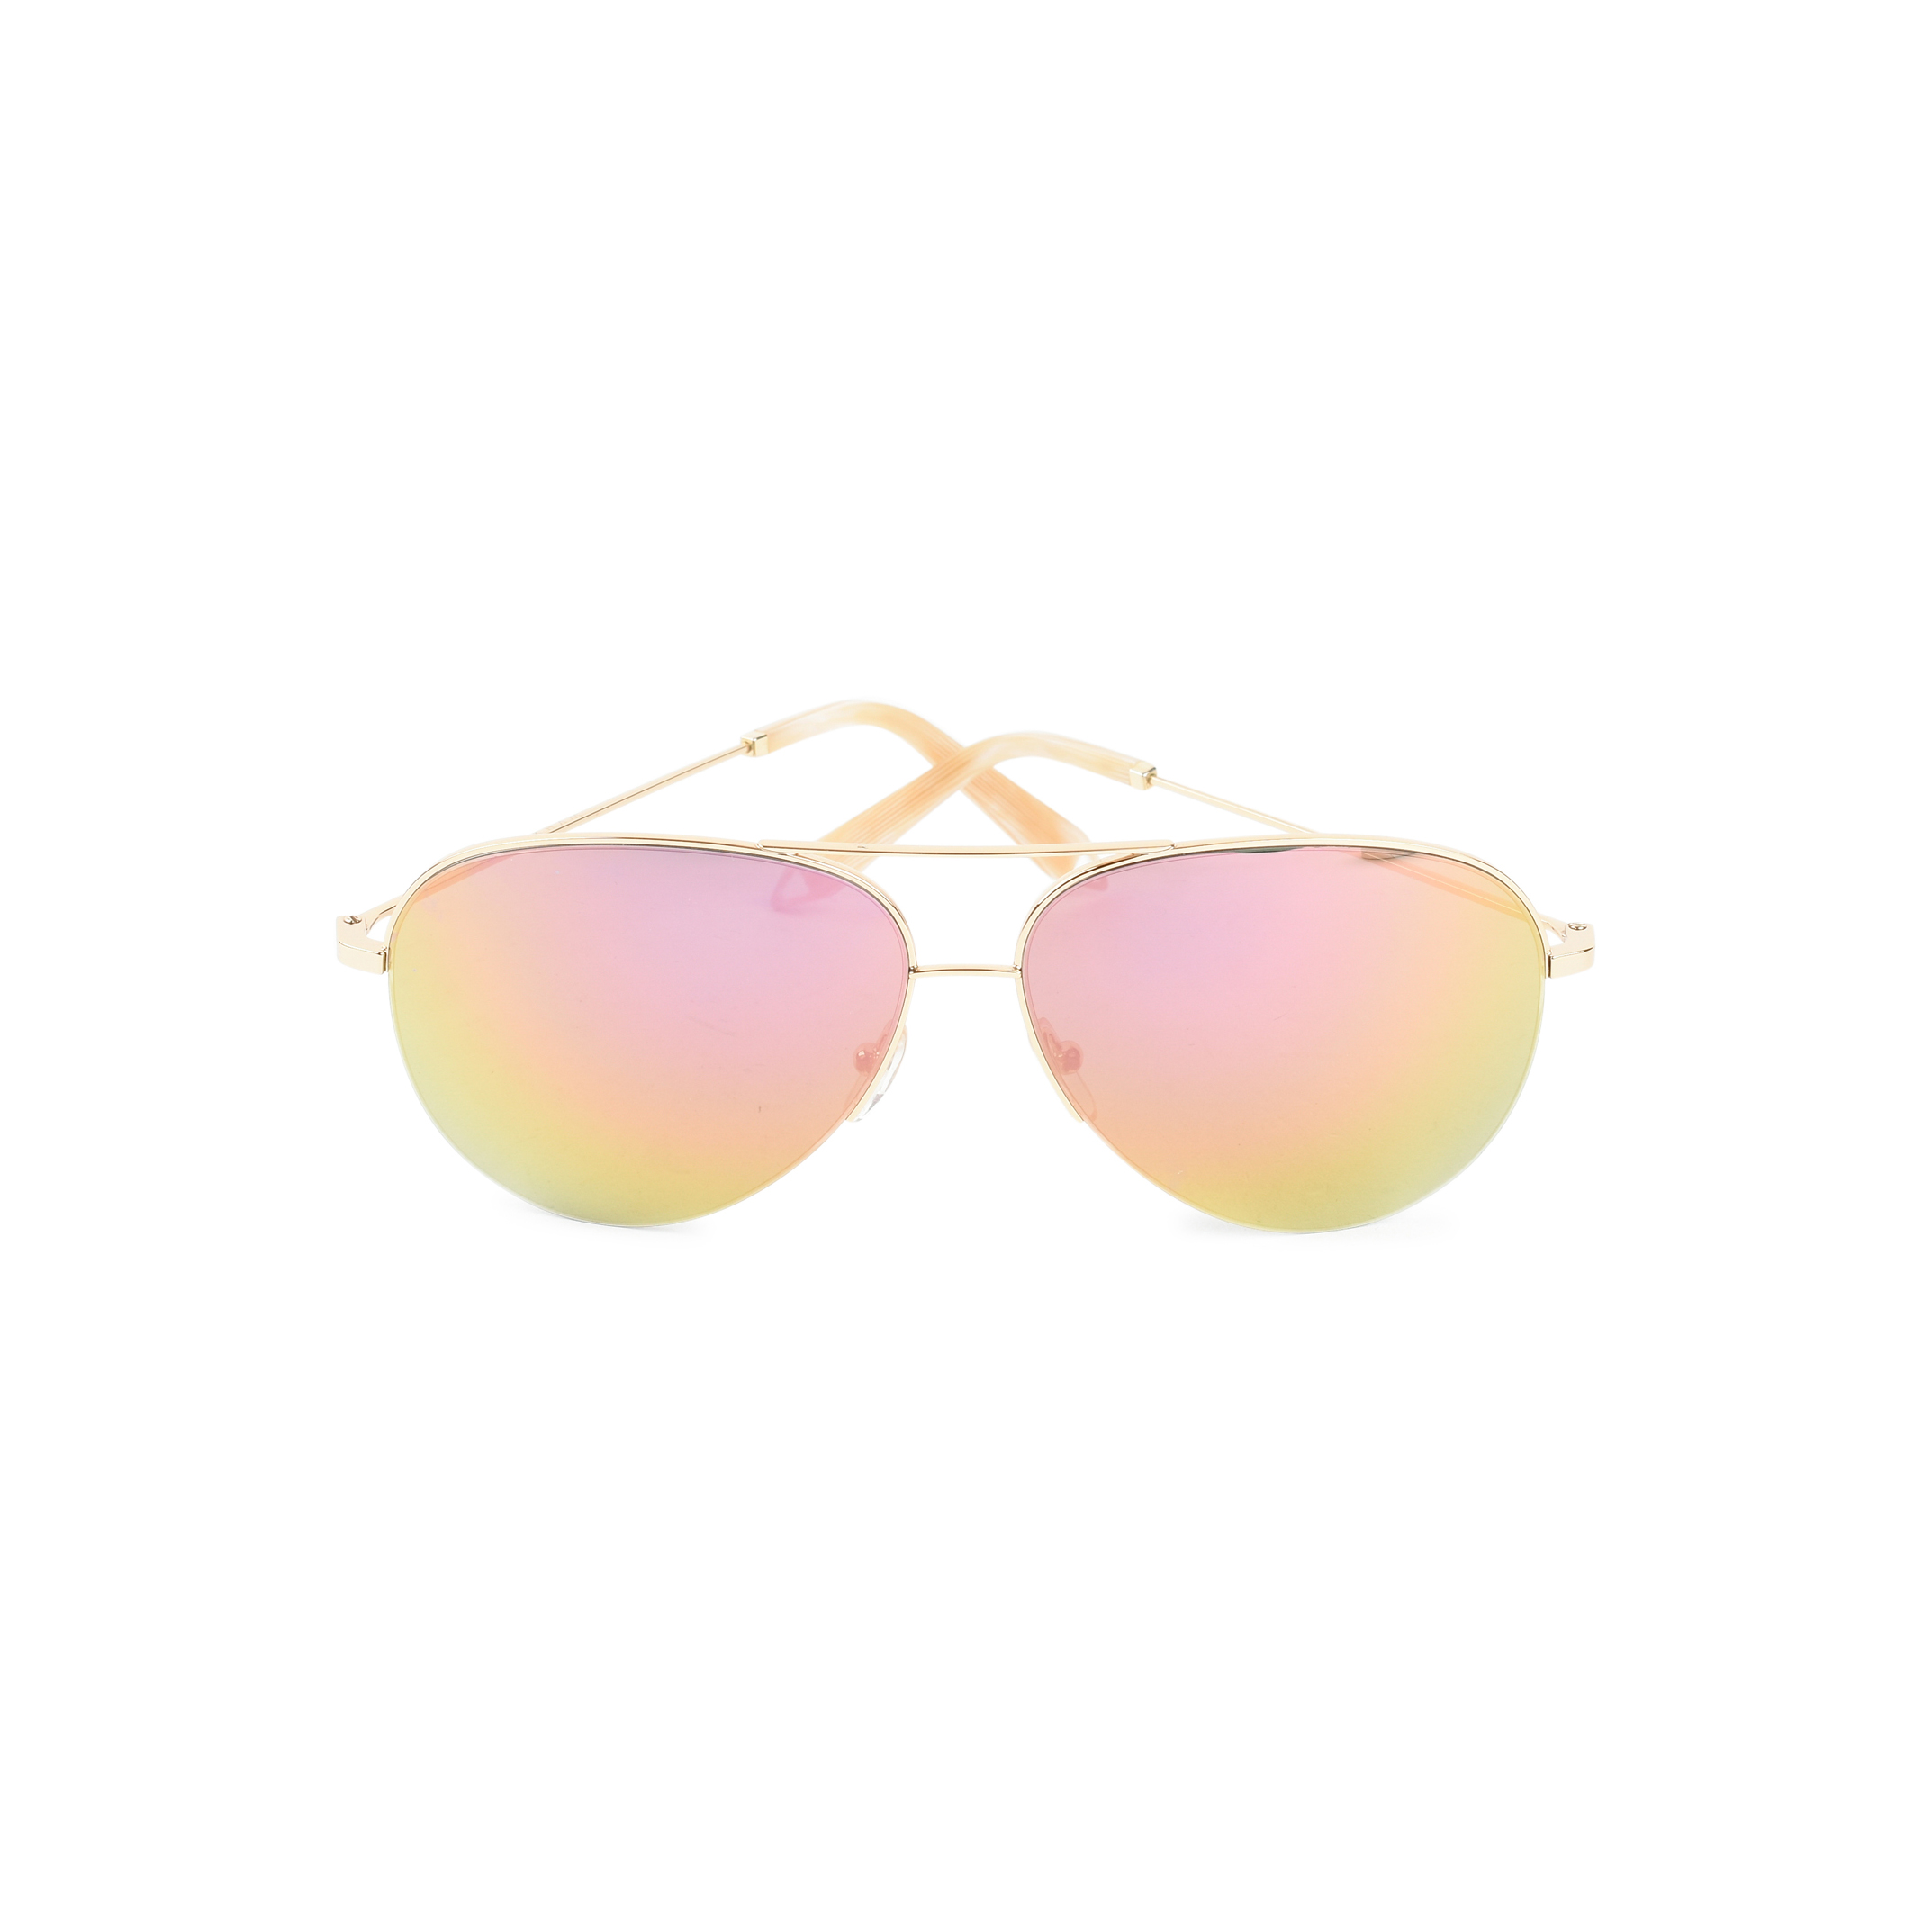 34f42798ee Authentic Second Hand Victoria Beckham Desert Rose Mirrored Sunglasses  (PSS-424-00063)